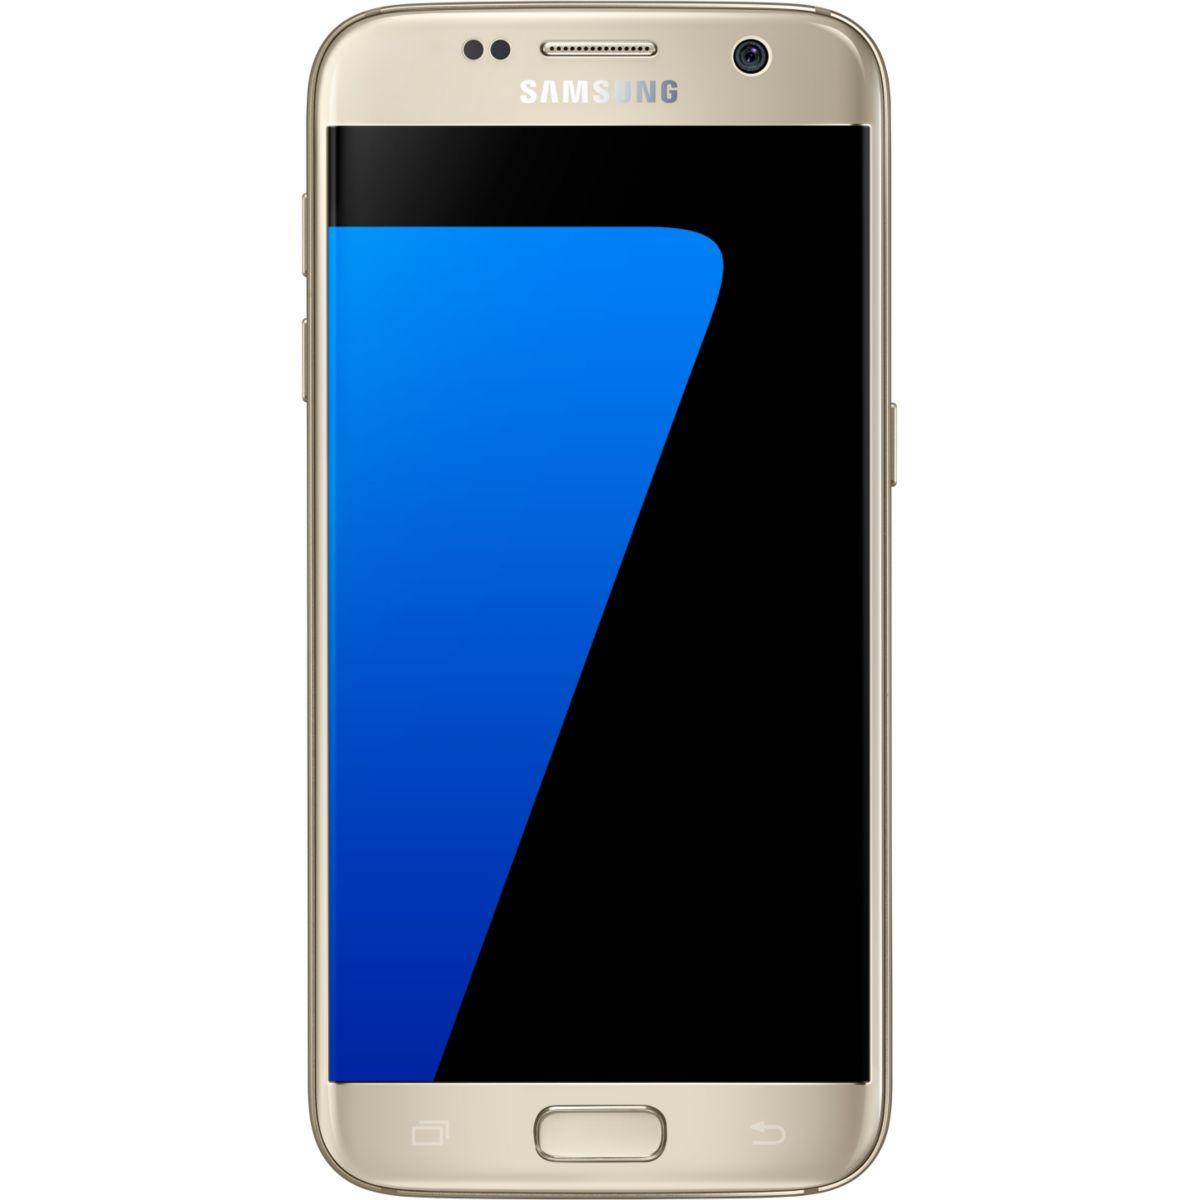 Pack promo smartphone samsung galaxy s7 32 go or + etui samsung s view cover galaxy s7 gold - soldes et bonnes affaires à prix imbattables